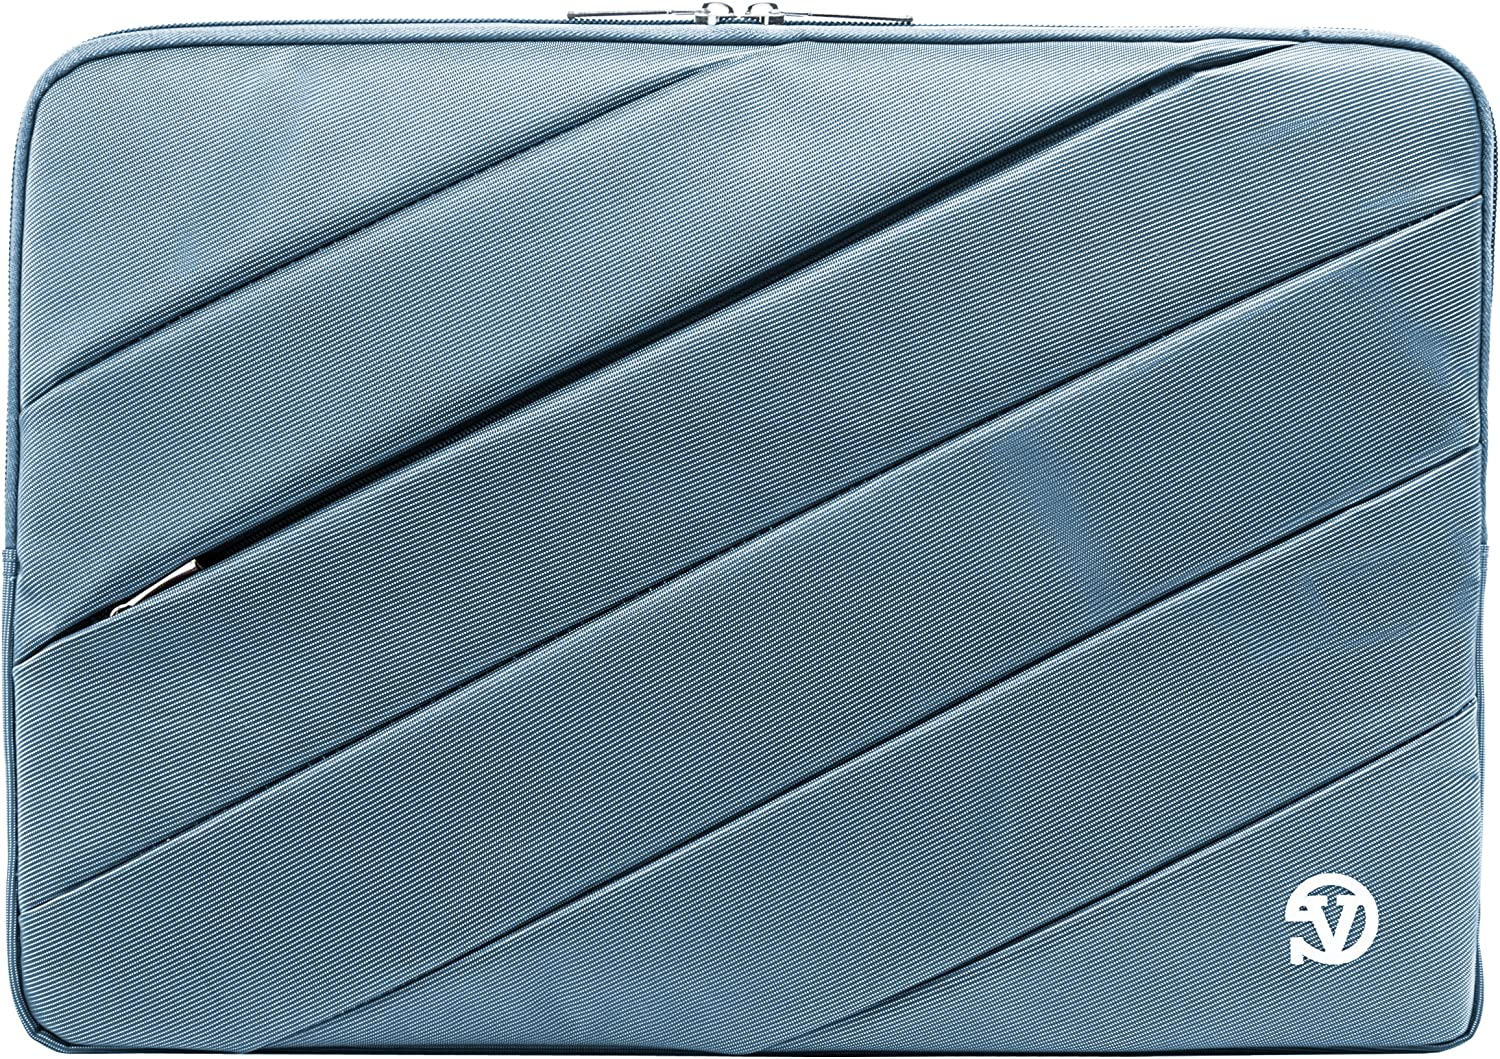 Protective Shock Absorbing Laptop Sleeve Case (Blue, 11.6 to 12.5 inch) for Dell Inspiron 11, Latitude 11 12, ChromeBook, Education Series, XPS 12